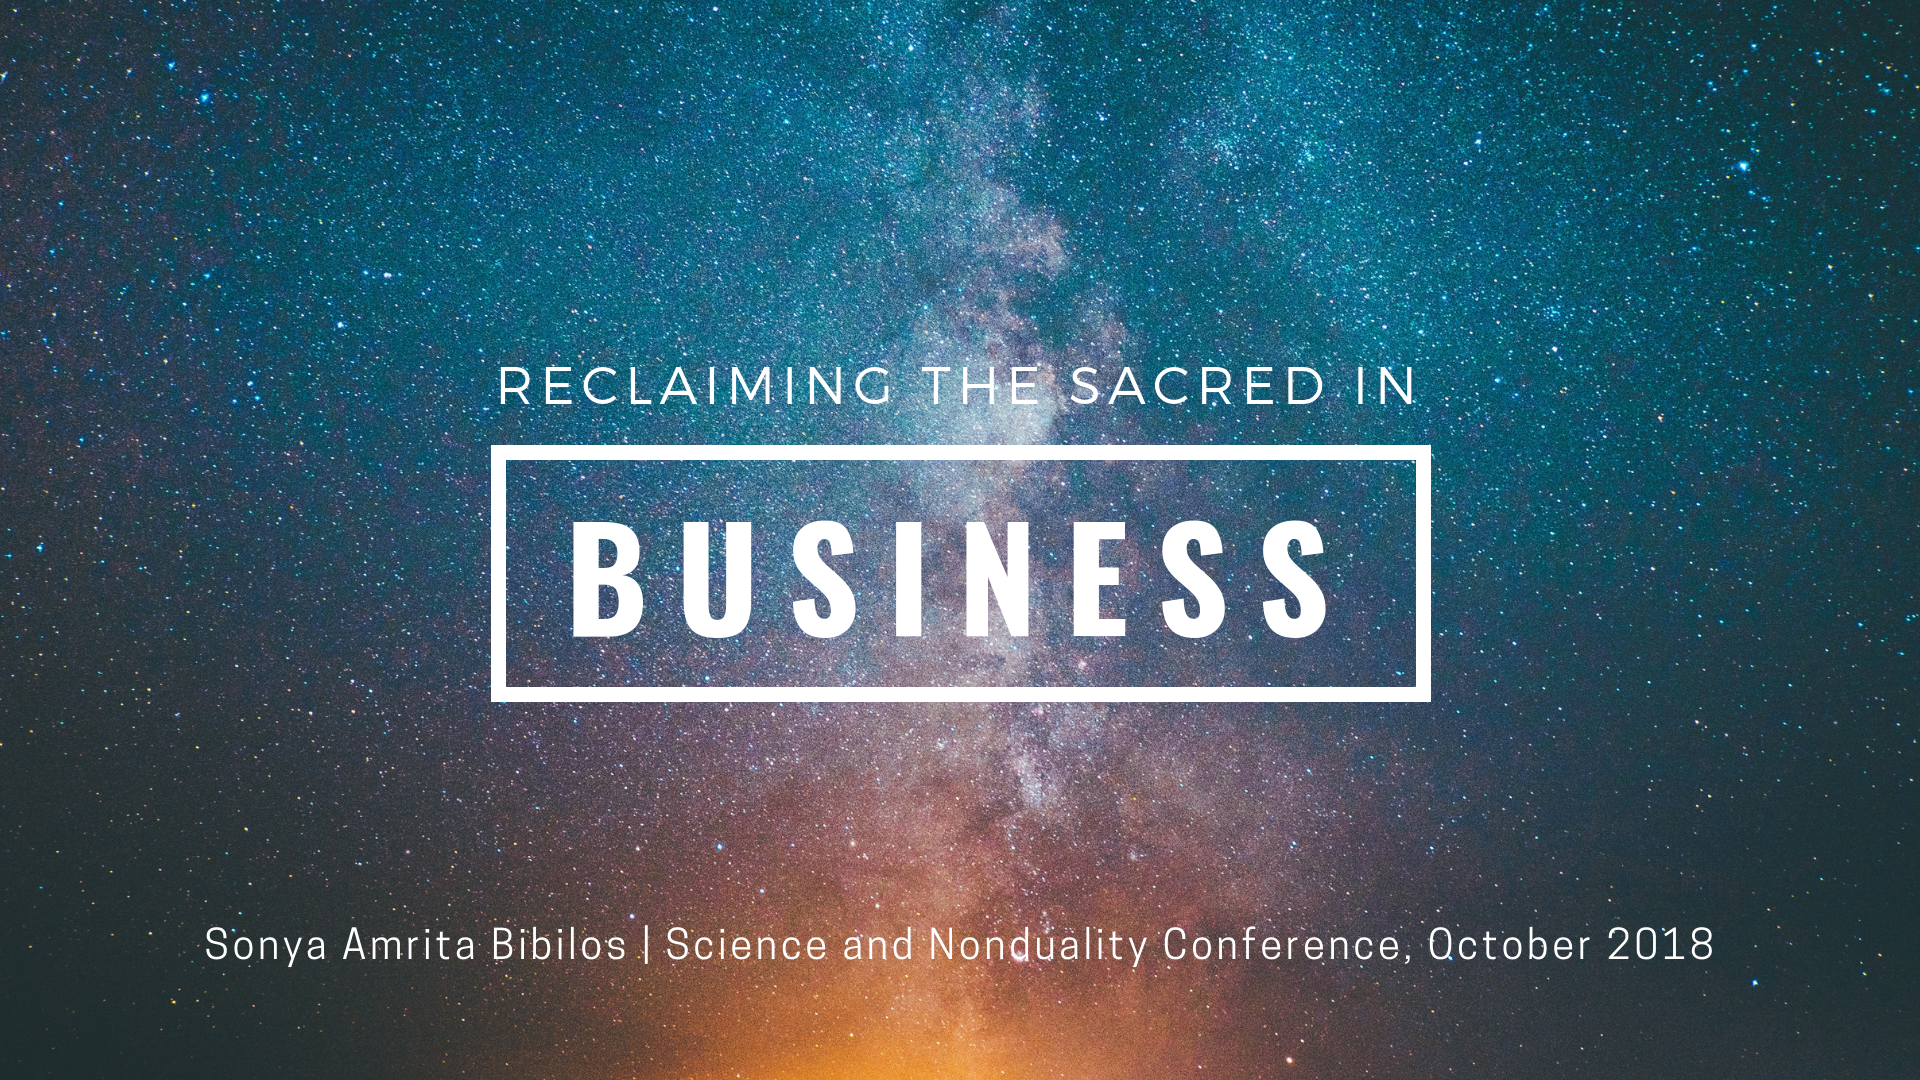 Reclaiming the sacred in business by Sonya at SAND 2018